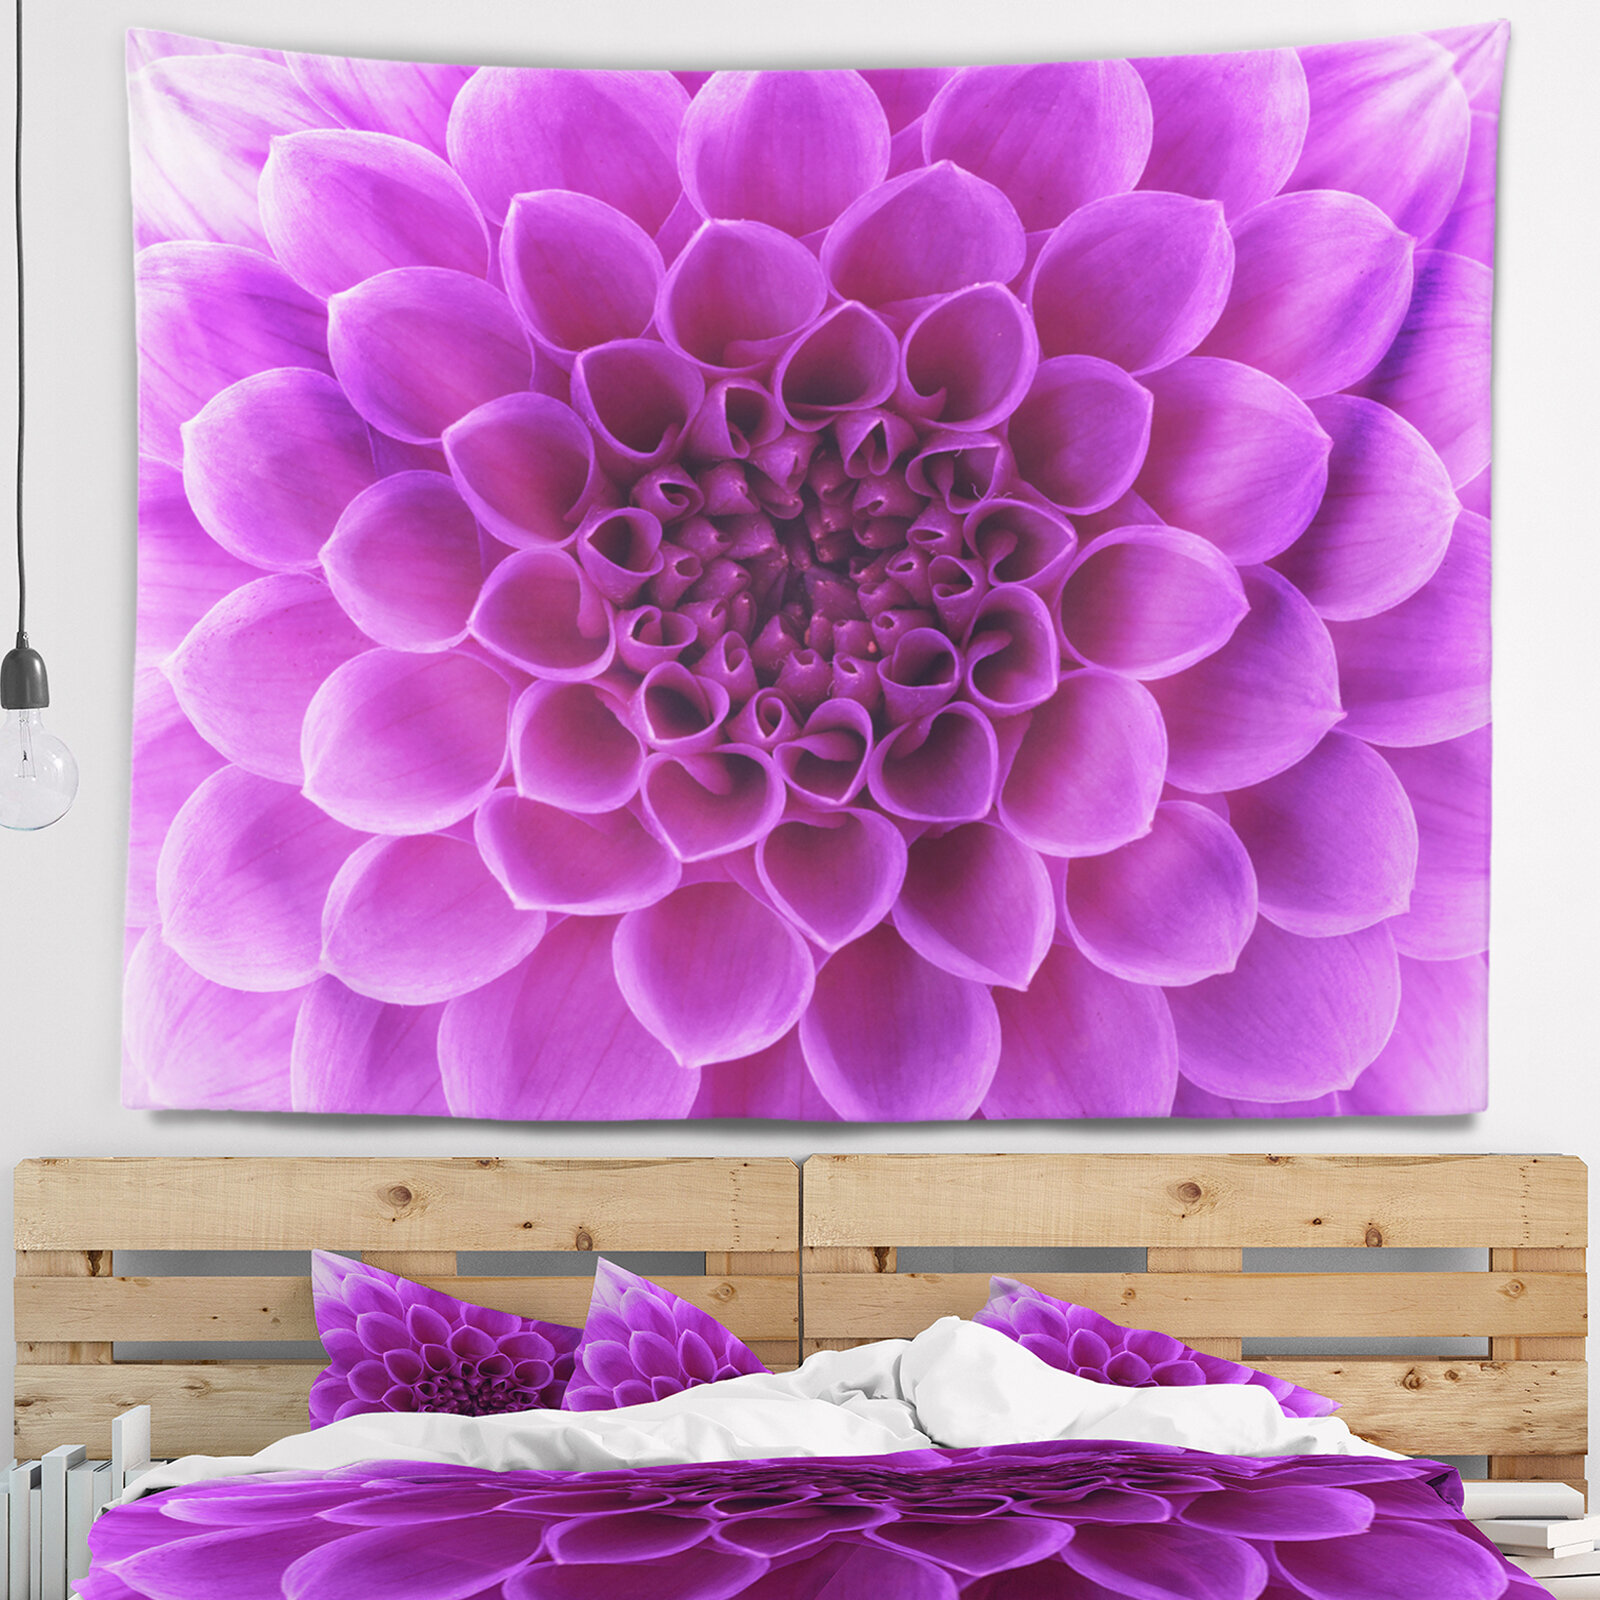 East Urban Home Floral Light Purple Flower Petals Tapestry And Wall